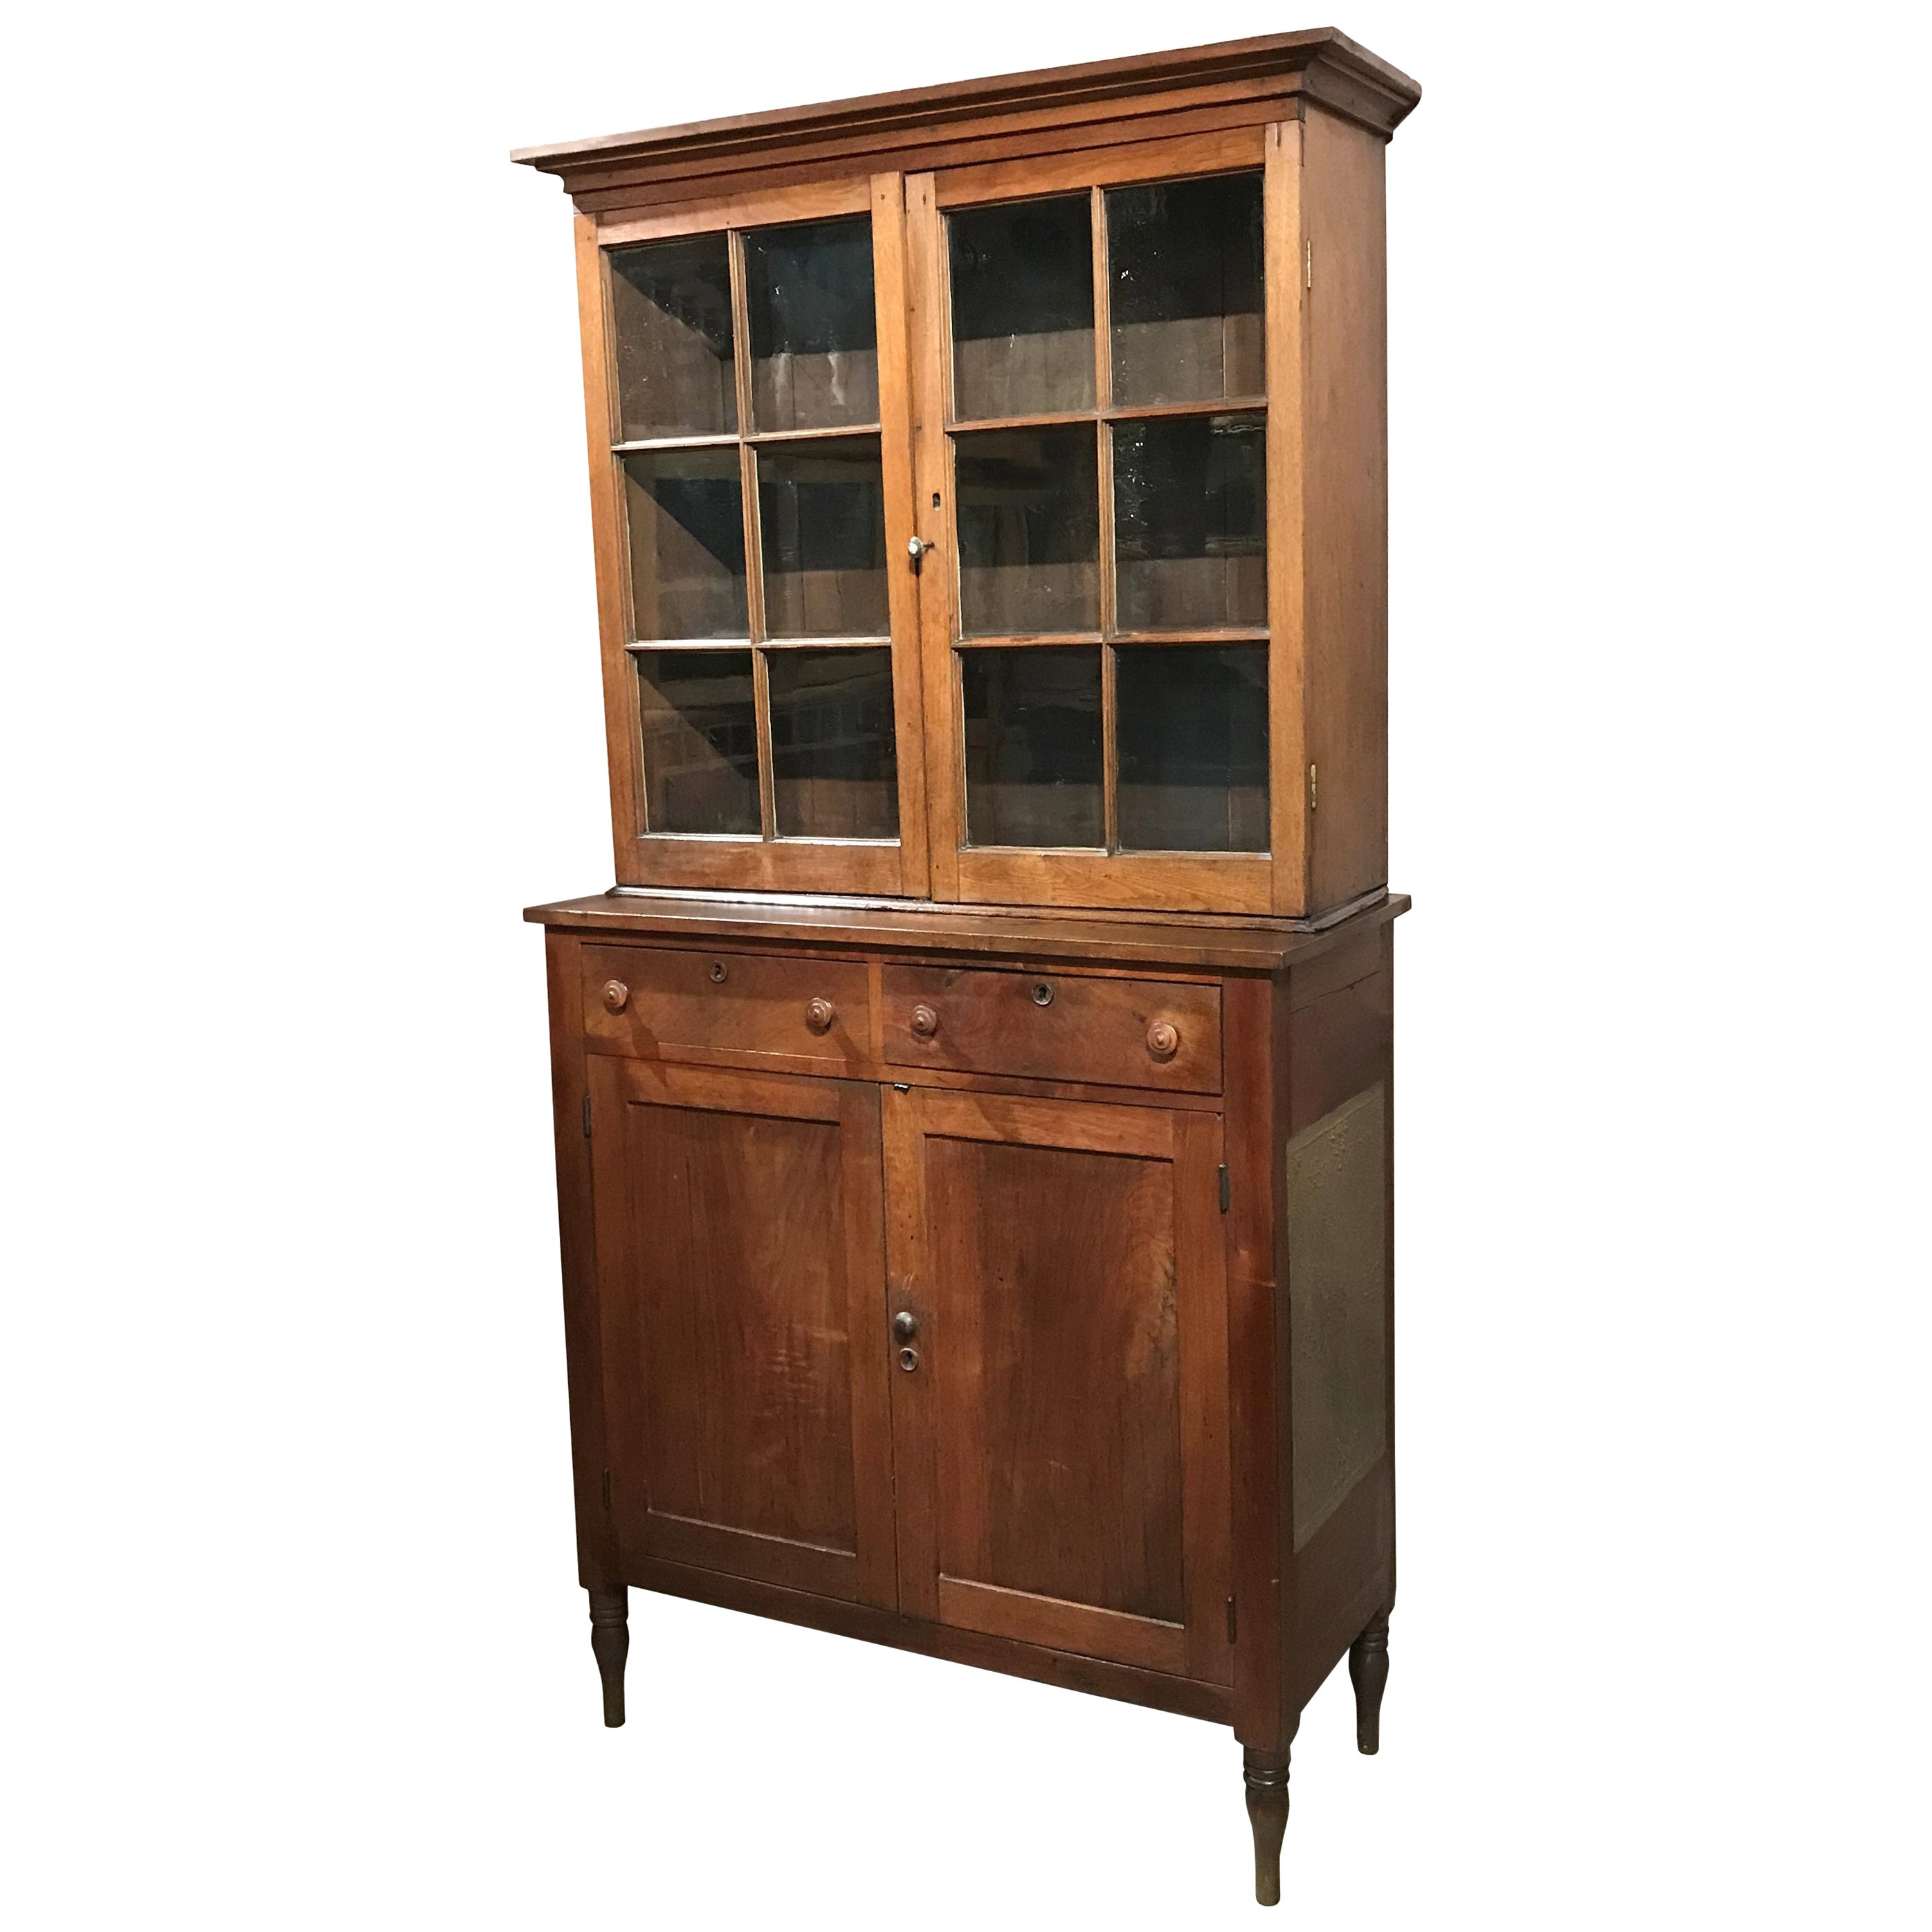 Rare Early 19th Century Two Part Step Back Walnut Pie Safe Cupboard